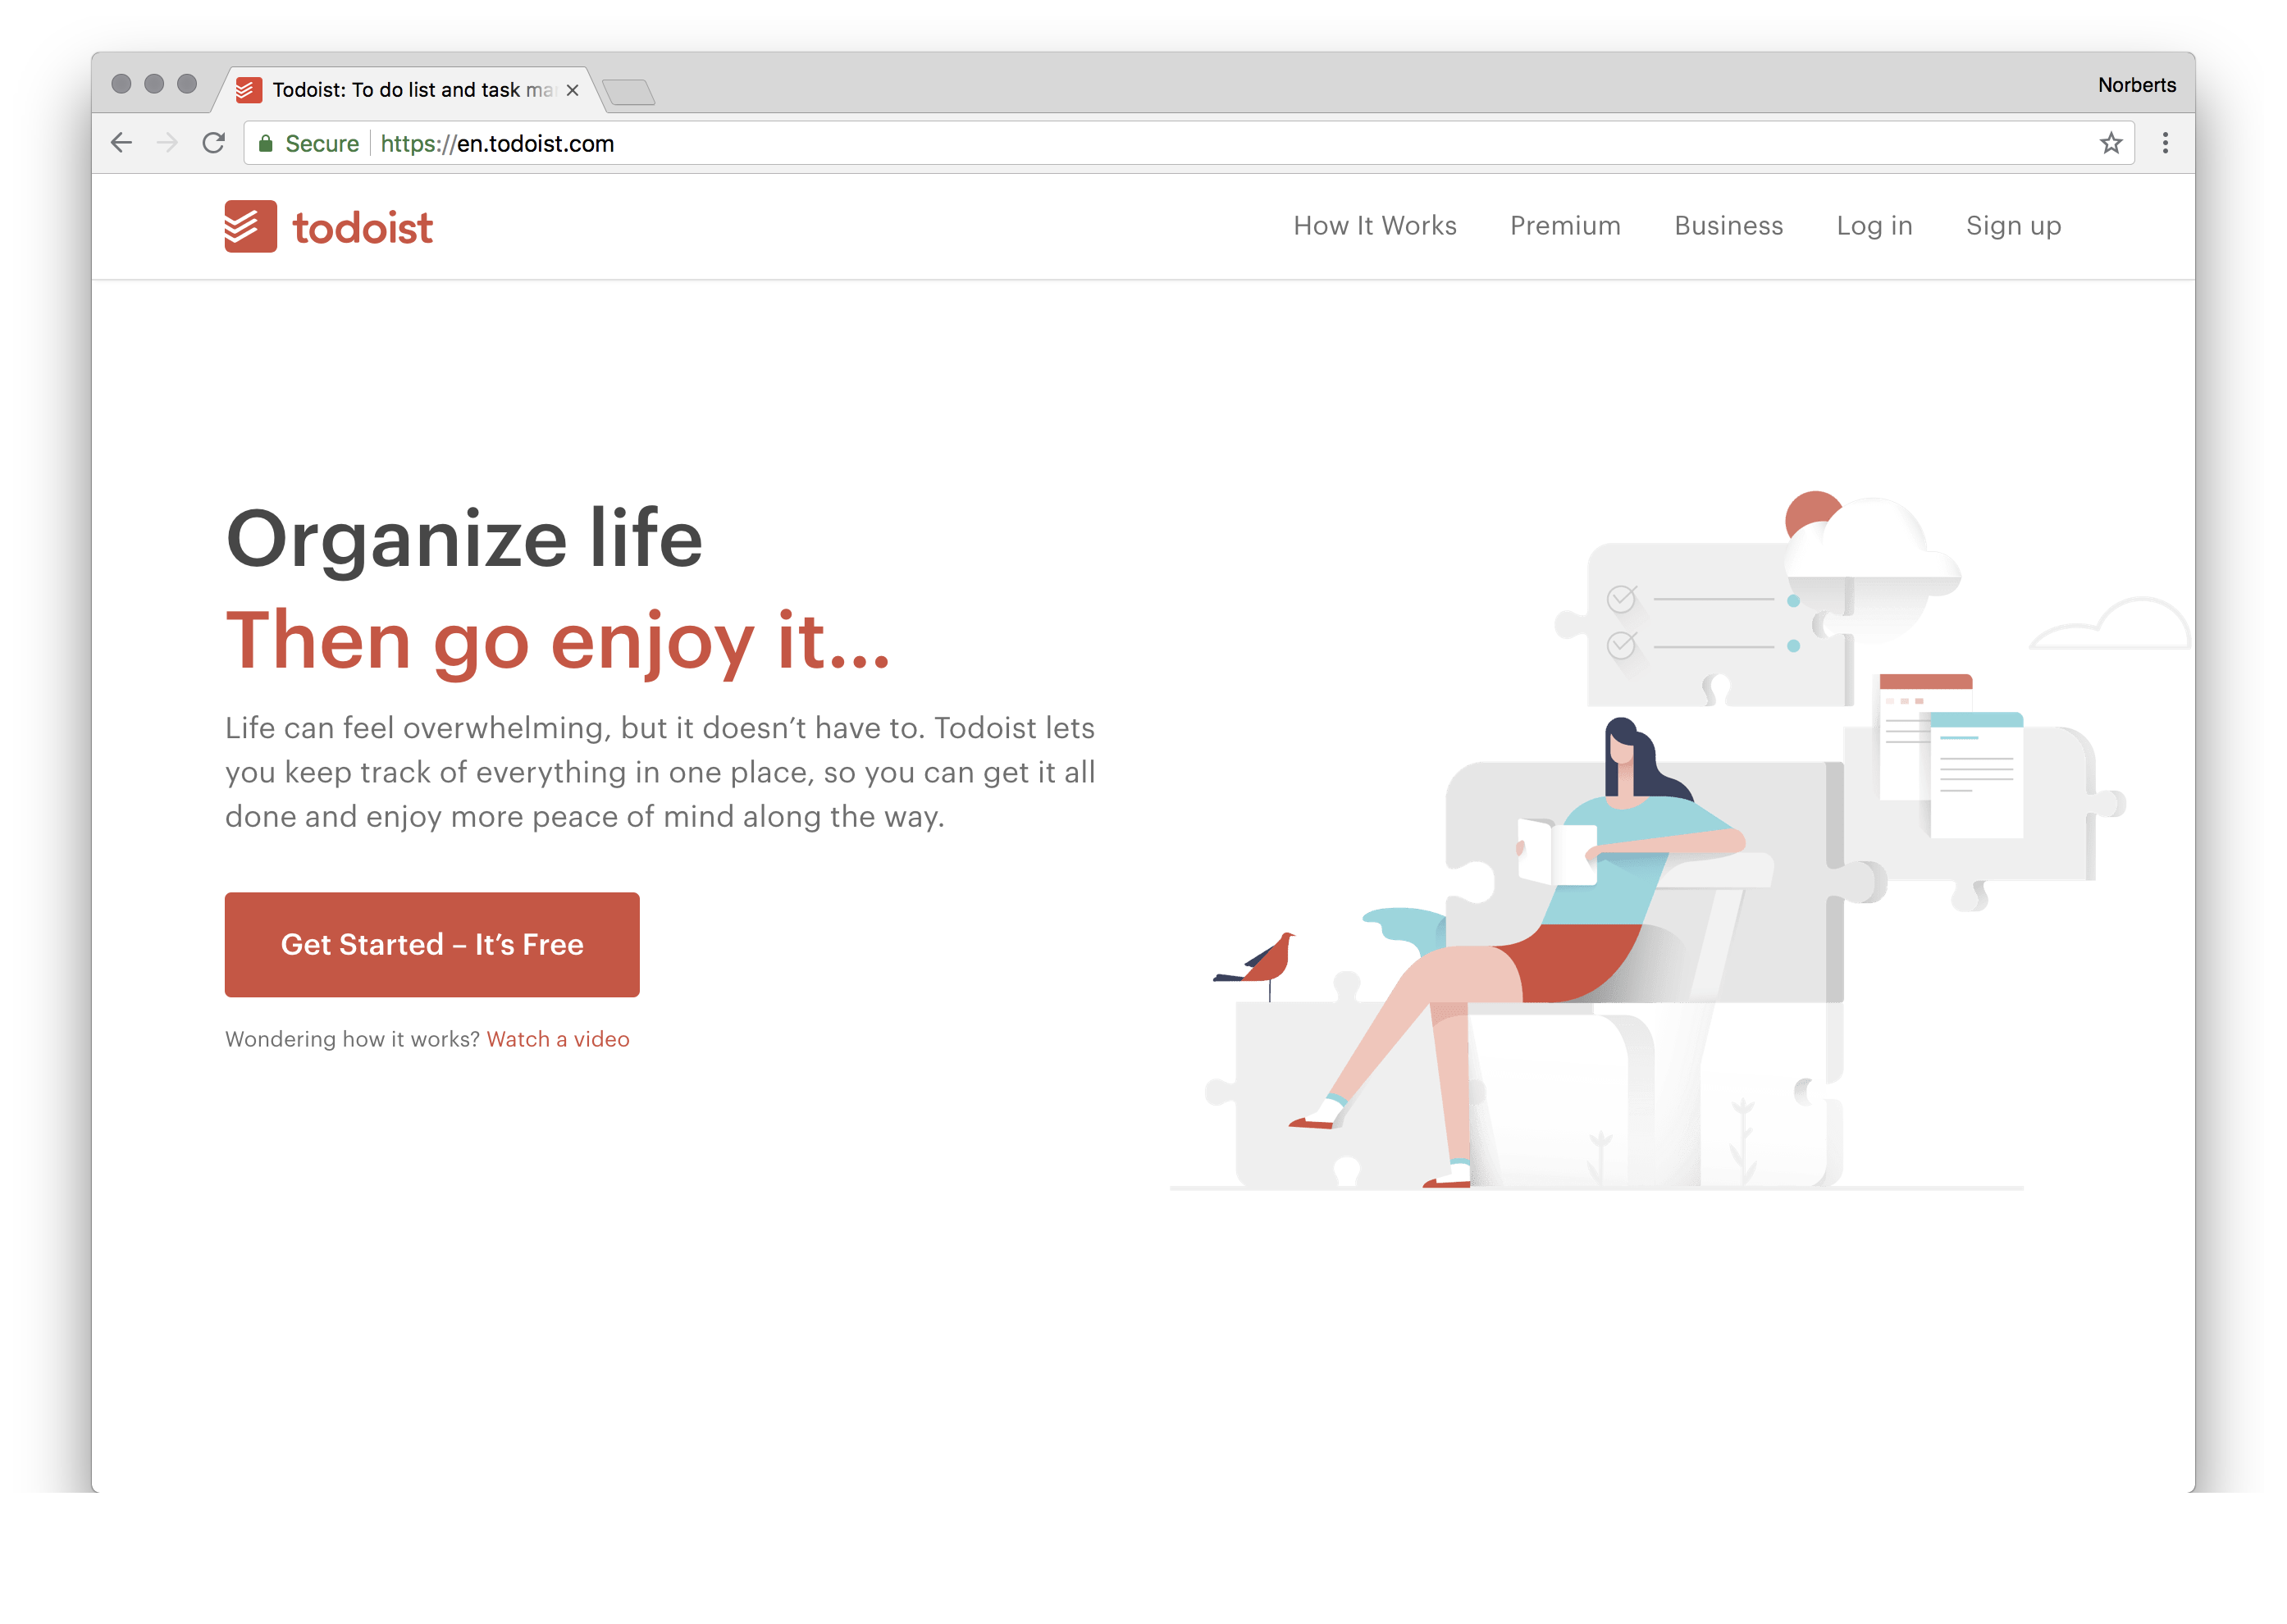 Life can feel overwhelming, but it doesn't have to. Todoist lets you keep track of everything in one place, so you can get it all done and enjoy more peace of mind along the way.